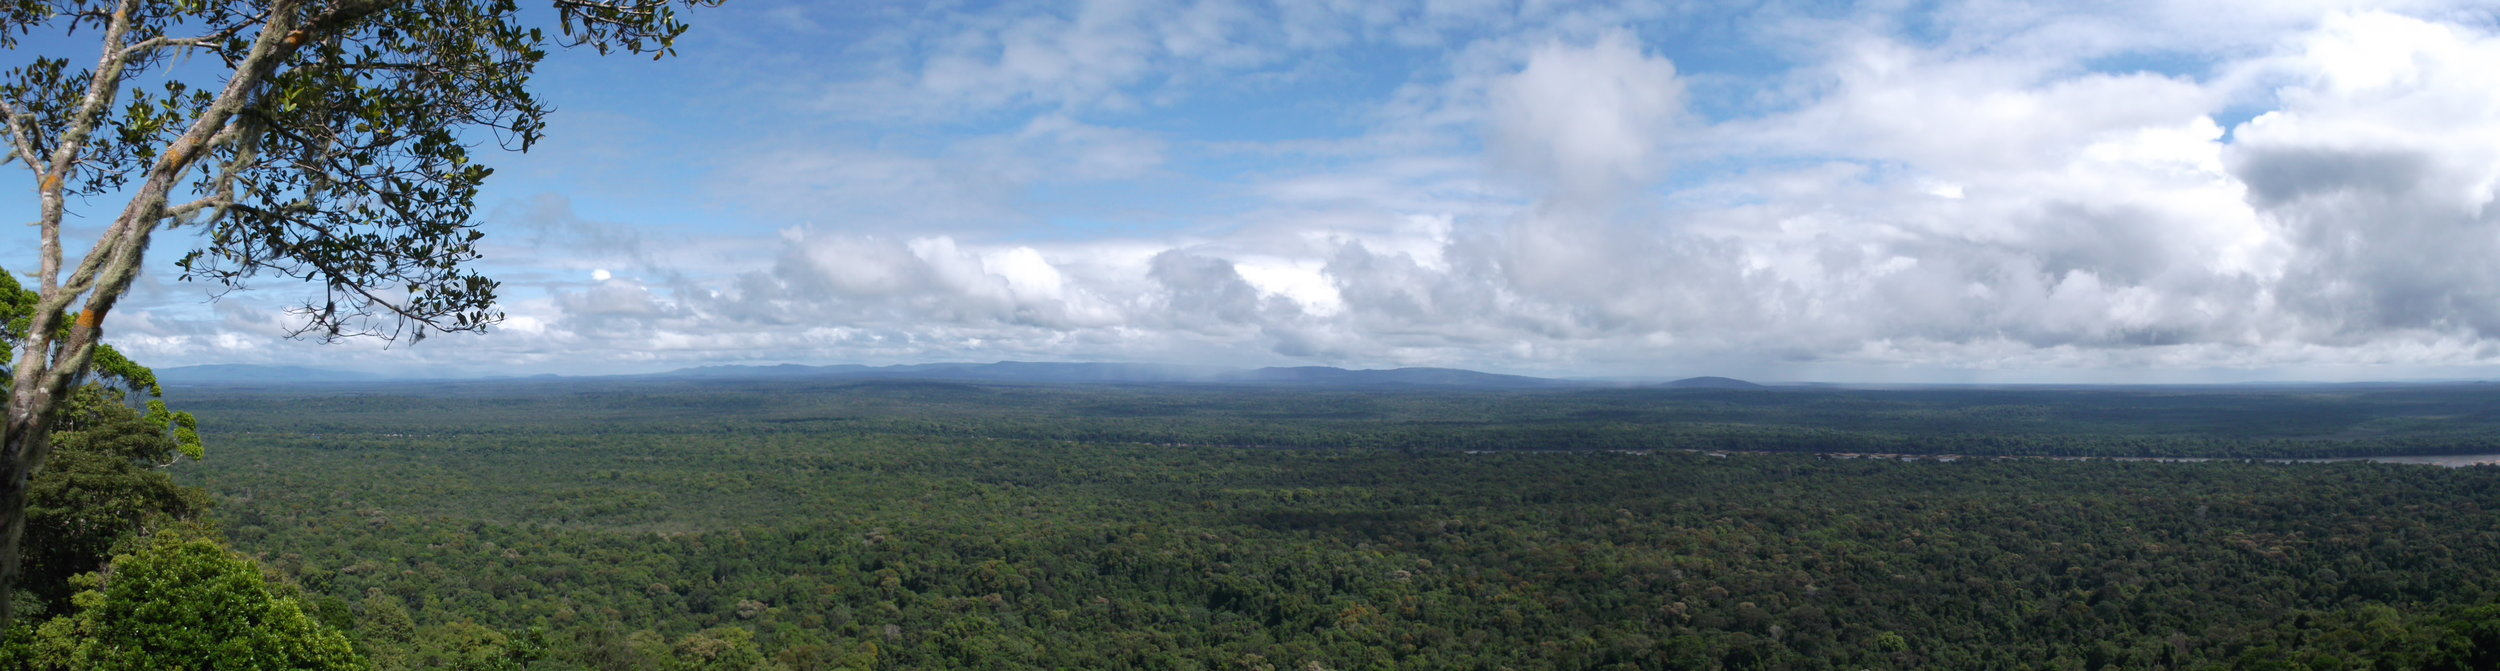 """Apparently, I was lucky"" - Panoramic view of the Iwokrama rainforest"